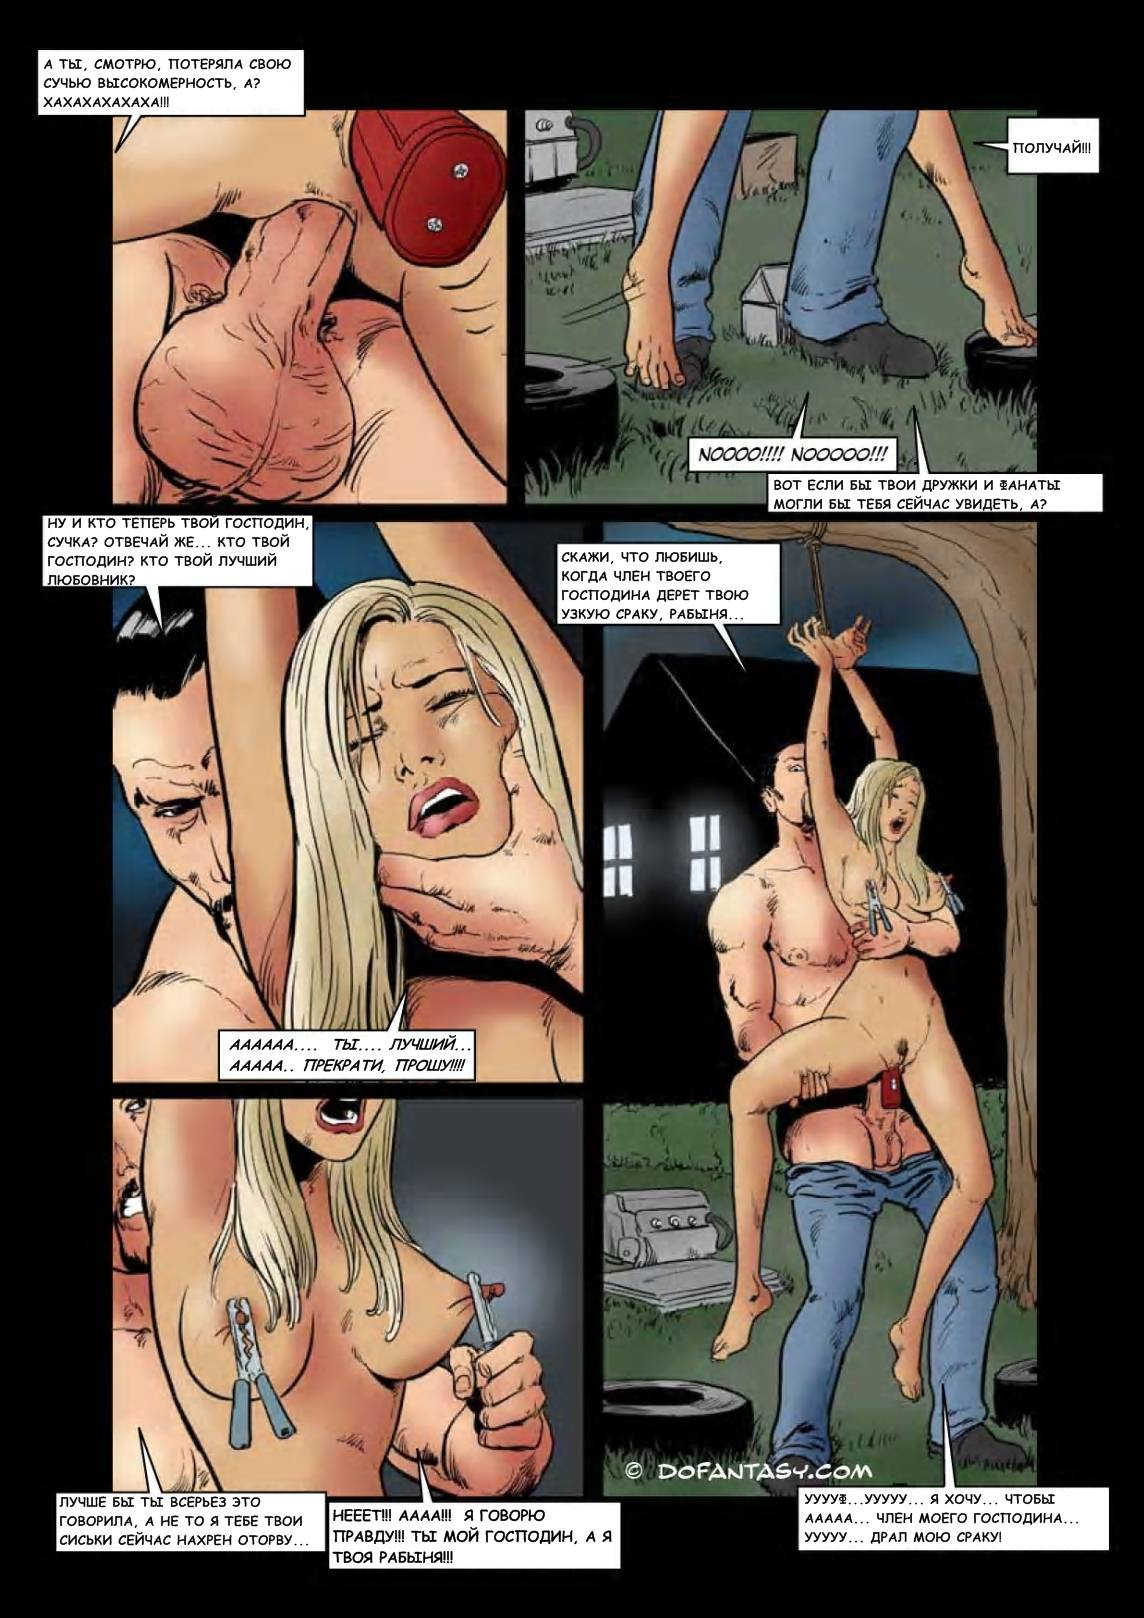 Rogue cheerleader sex videos free download hentay comics